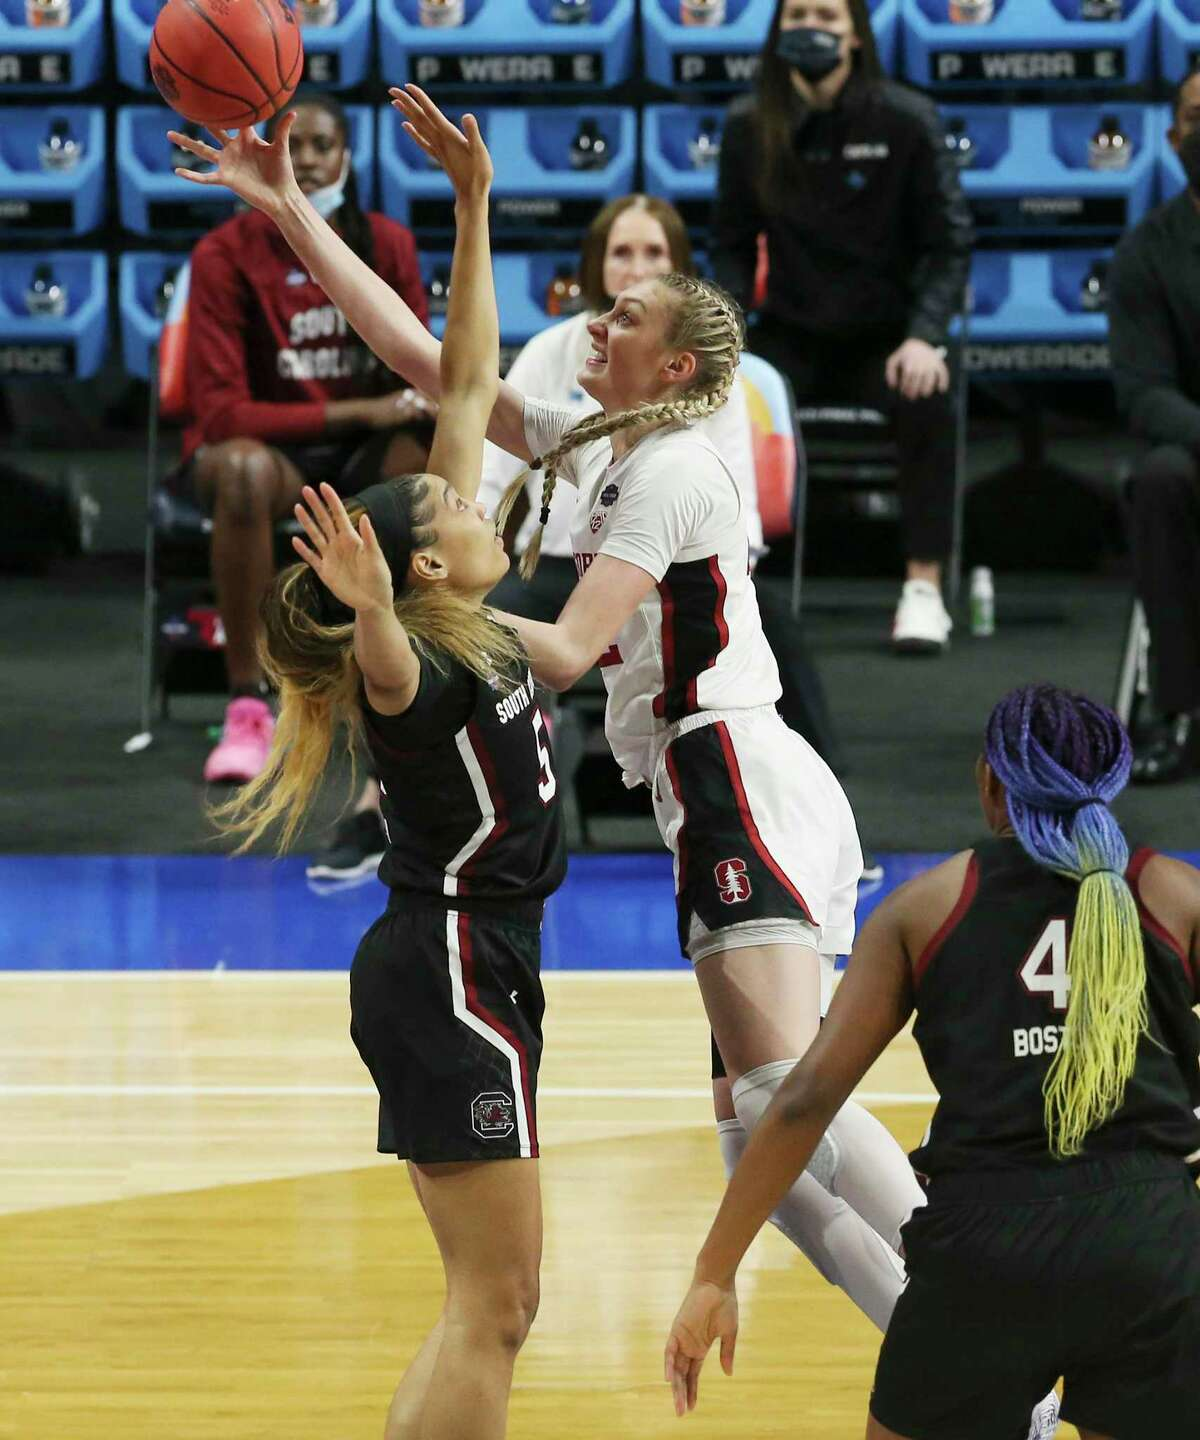 Stanford's Cameron Brink (22) puts up a shot against South Carolina's Victaria Saxton (05) during their 2021 NCAA Women's Final Four national semifinal basketball game at the Alamodome on Friday, Apr. 2, 2021.